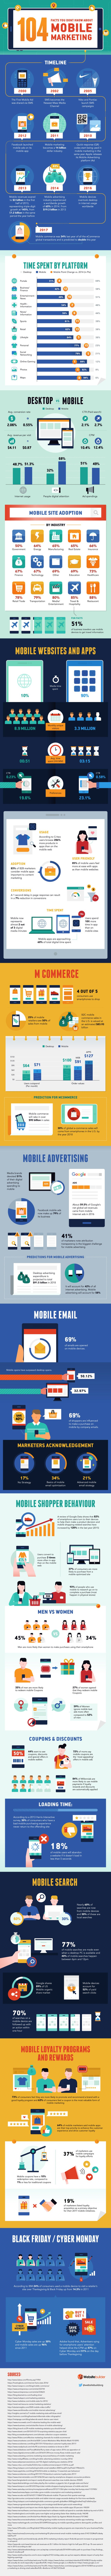 mobile-marketing-infographic-logo